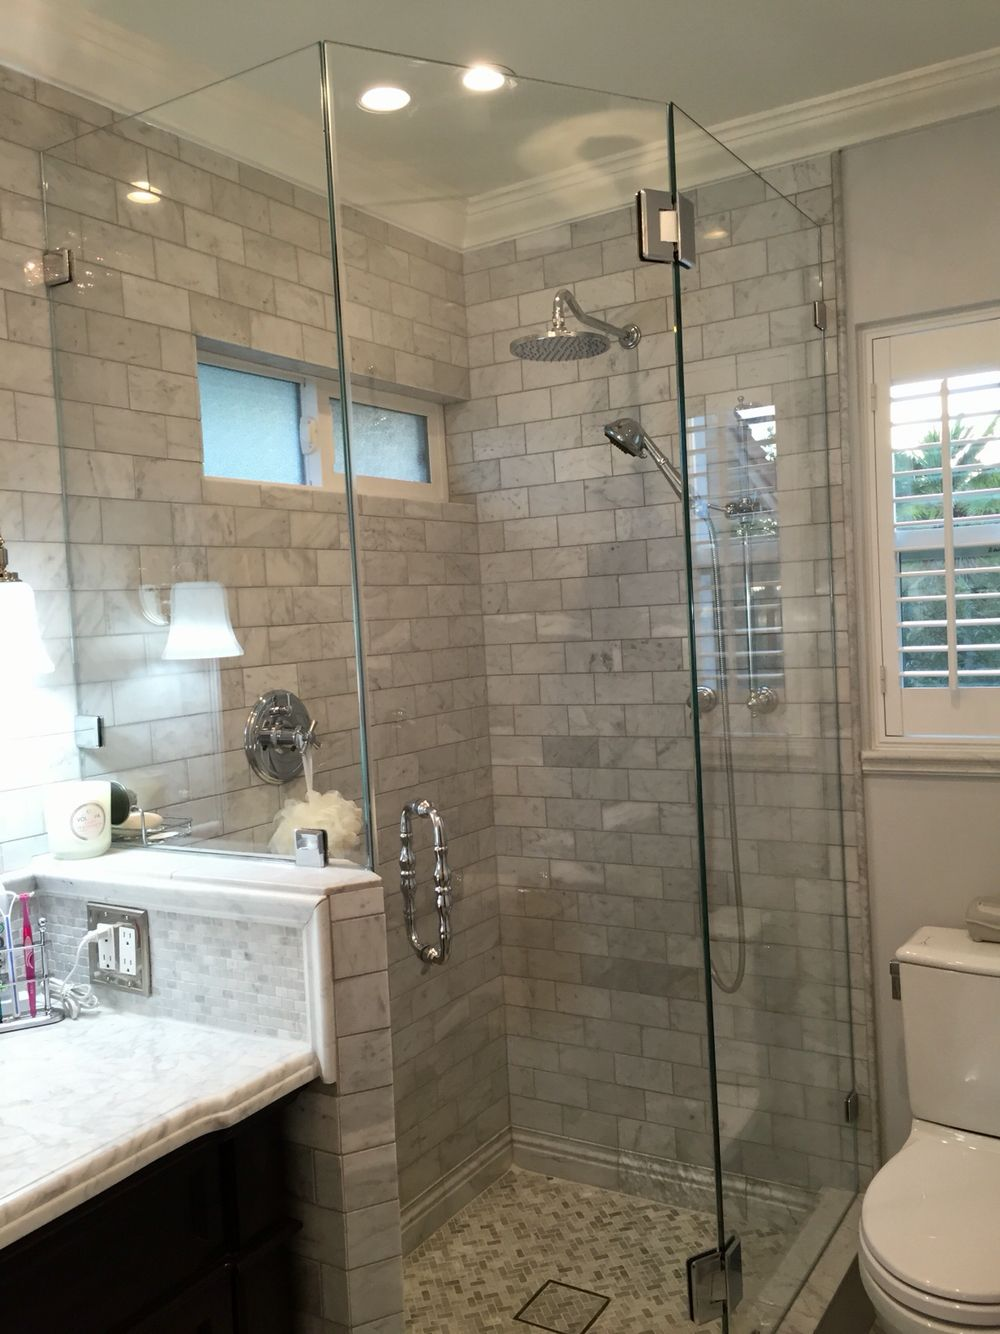 neoangled showers are great for tight spaces  shabby